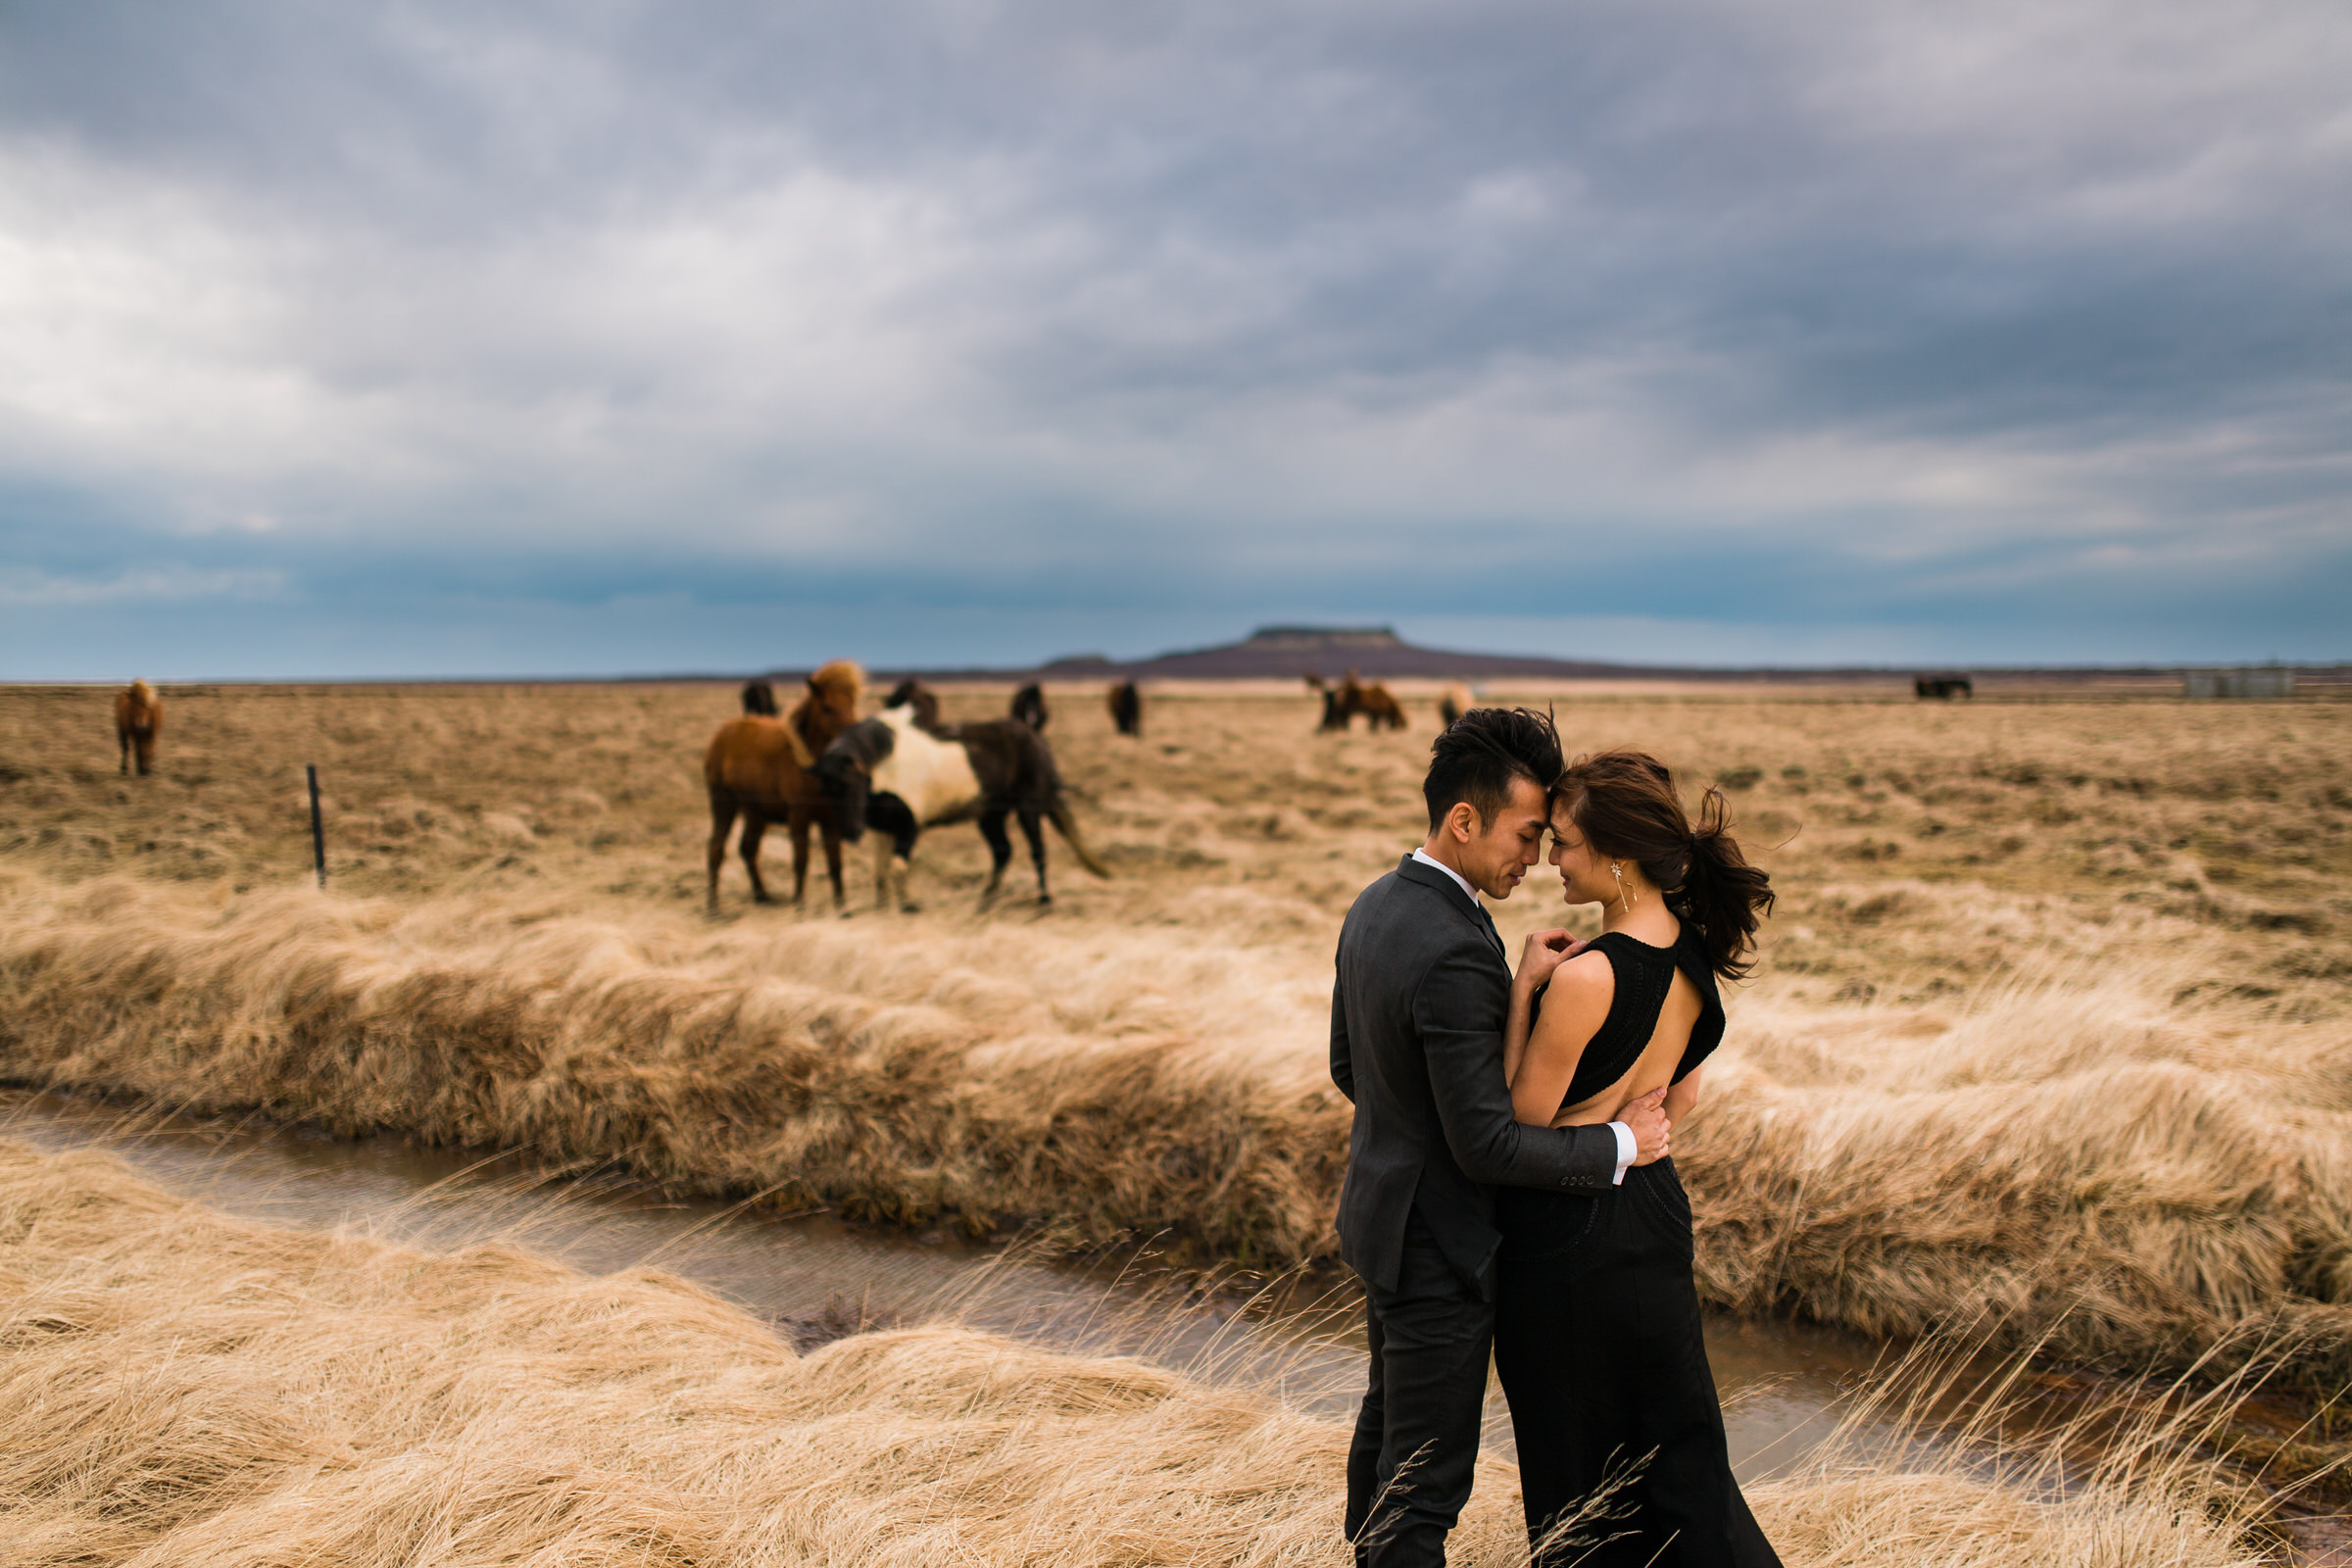 Elopement couple in Iceland landscape with horses - photo by M&J Studios